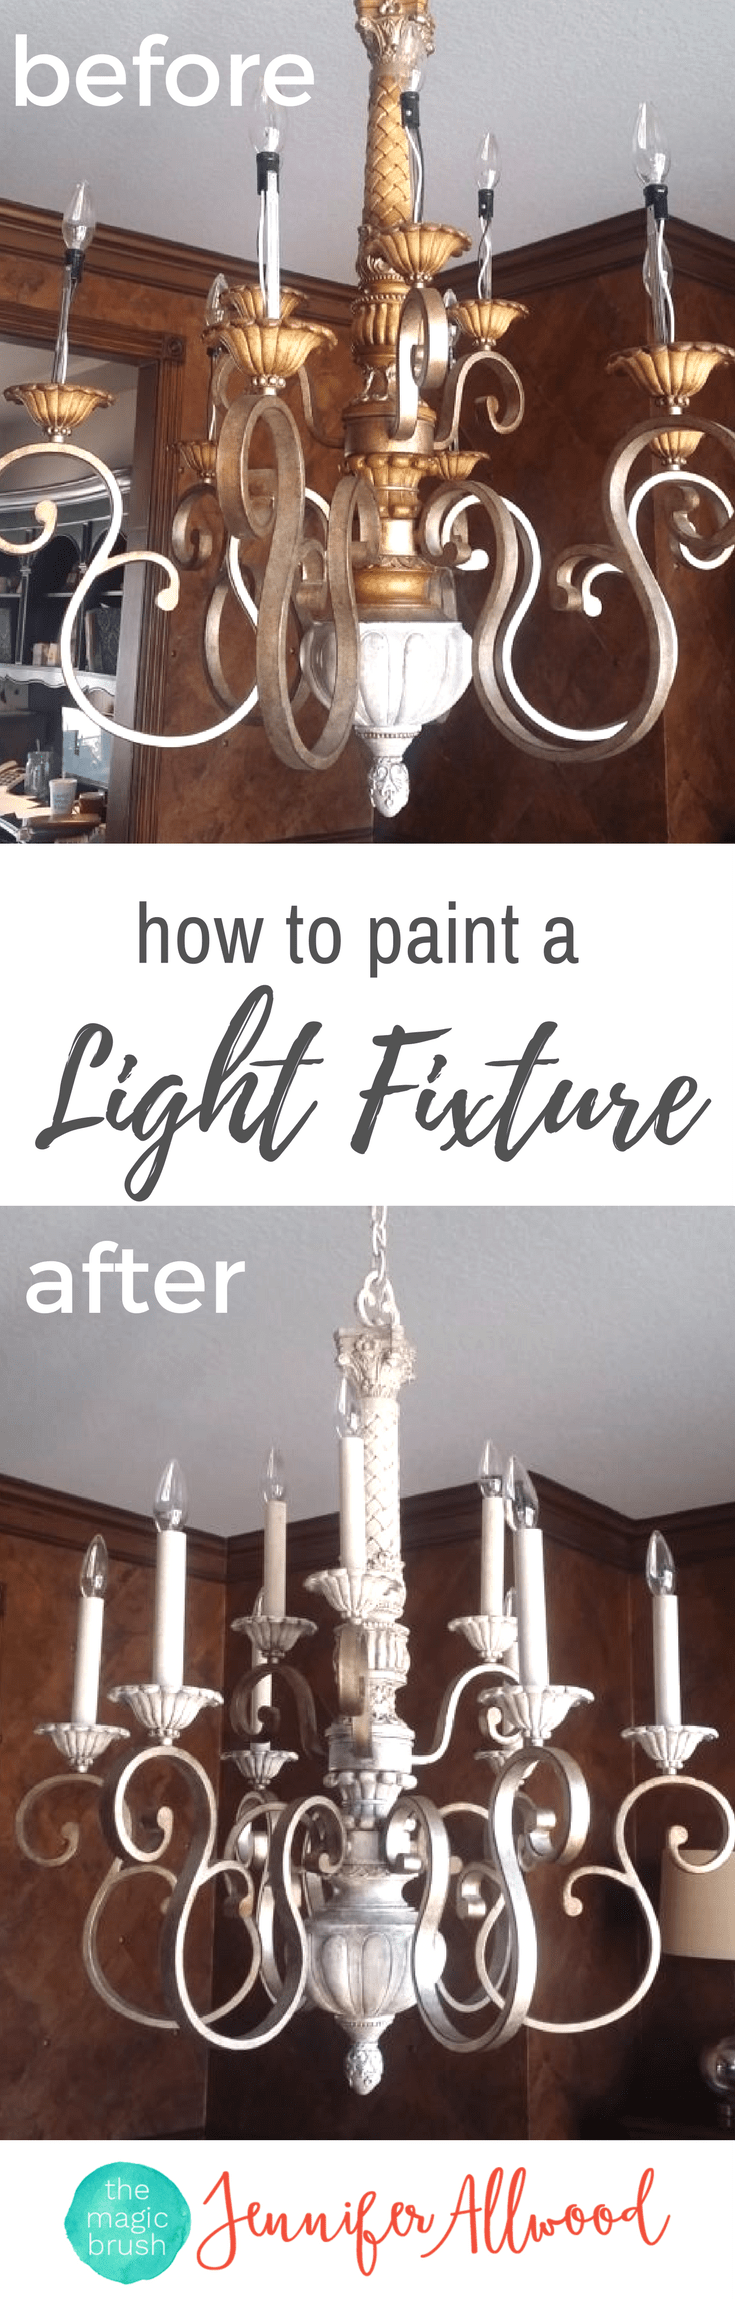 Painting light fixtures and chandeliers painted light fixtures painting light fixtures and chandeliers magic brush arubaitofo Choice Image